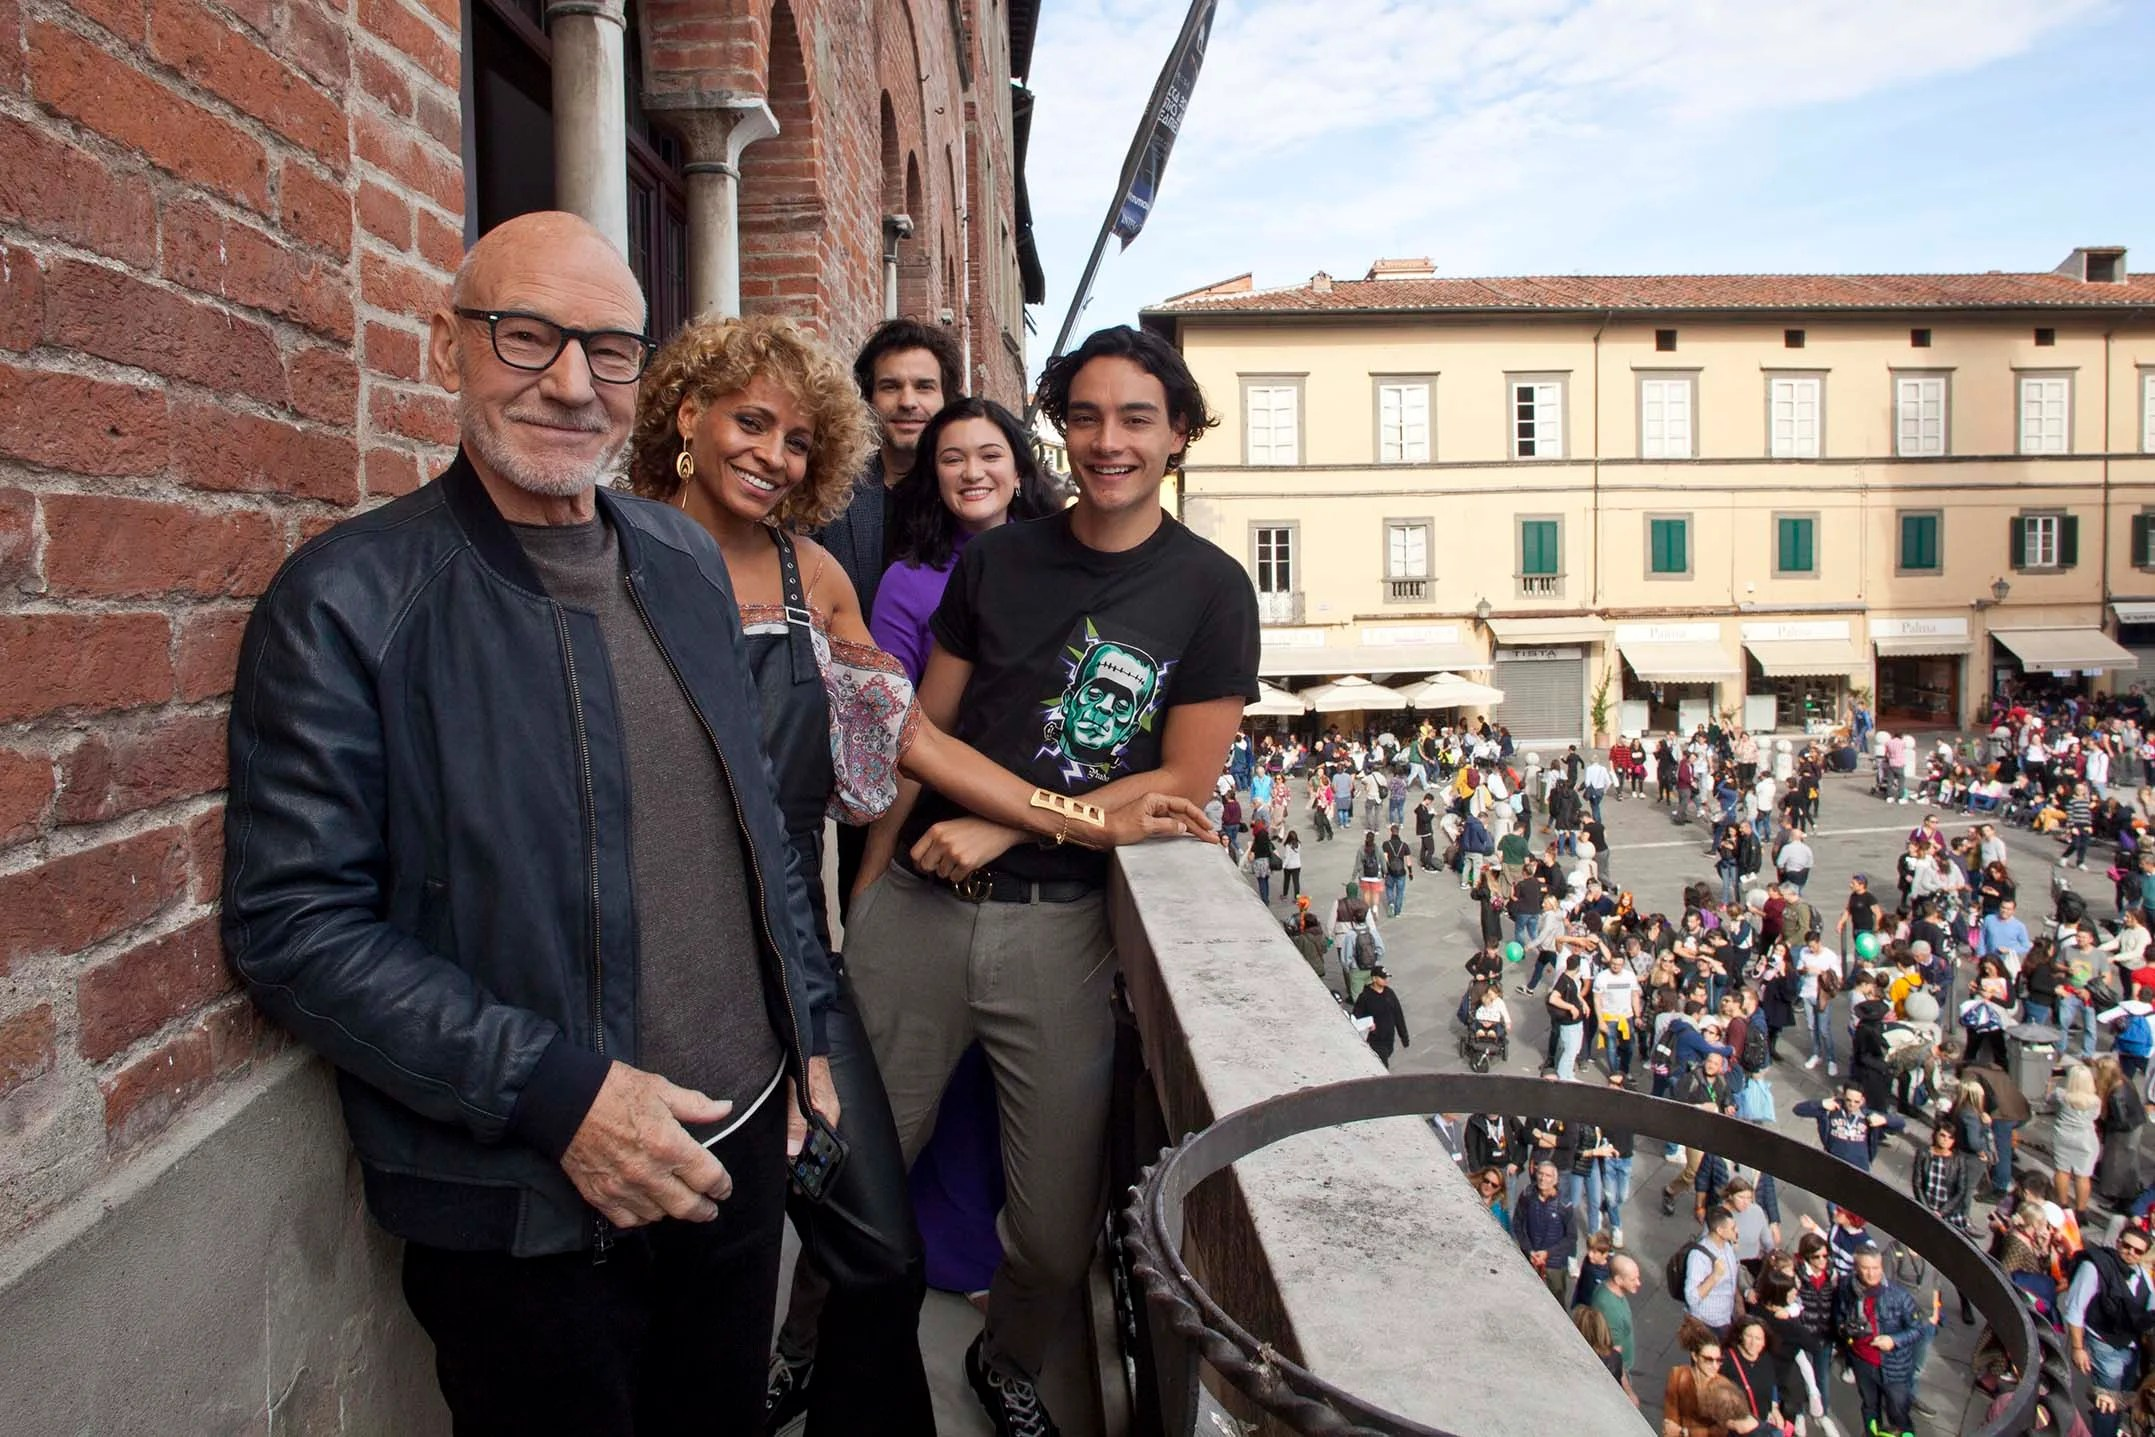 The Star Trek Picard Cast Appears At Lucca Comics And